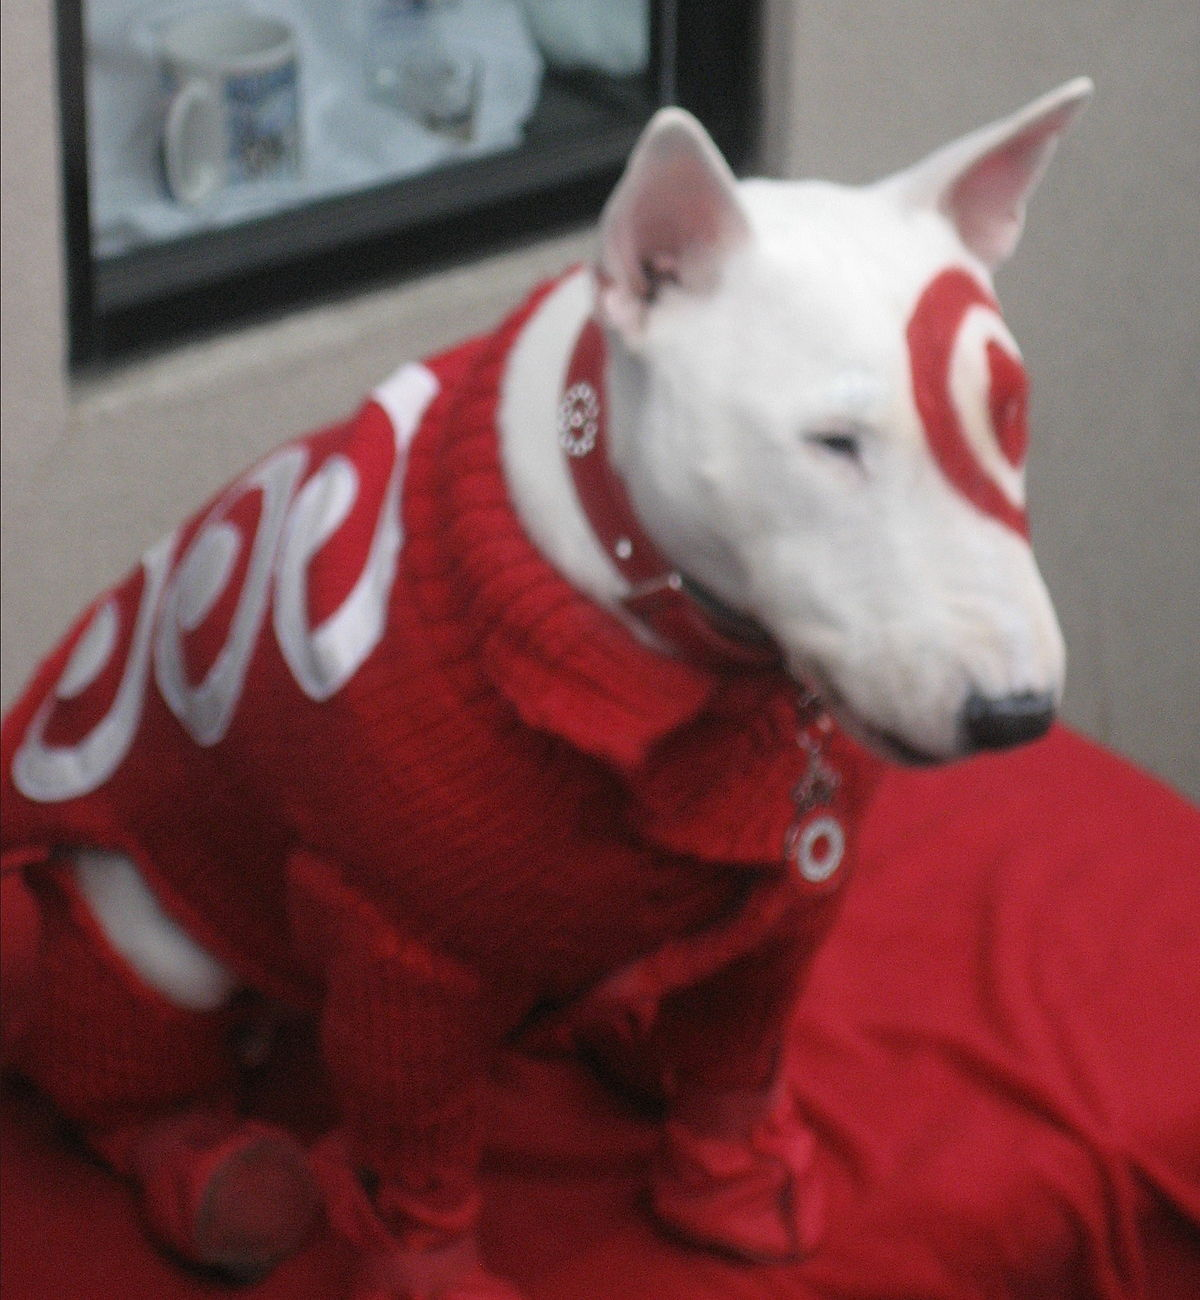 Bullseye mascot wikipedia What kind of dog is the target mascot